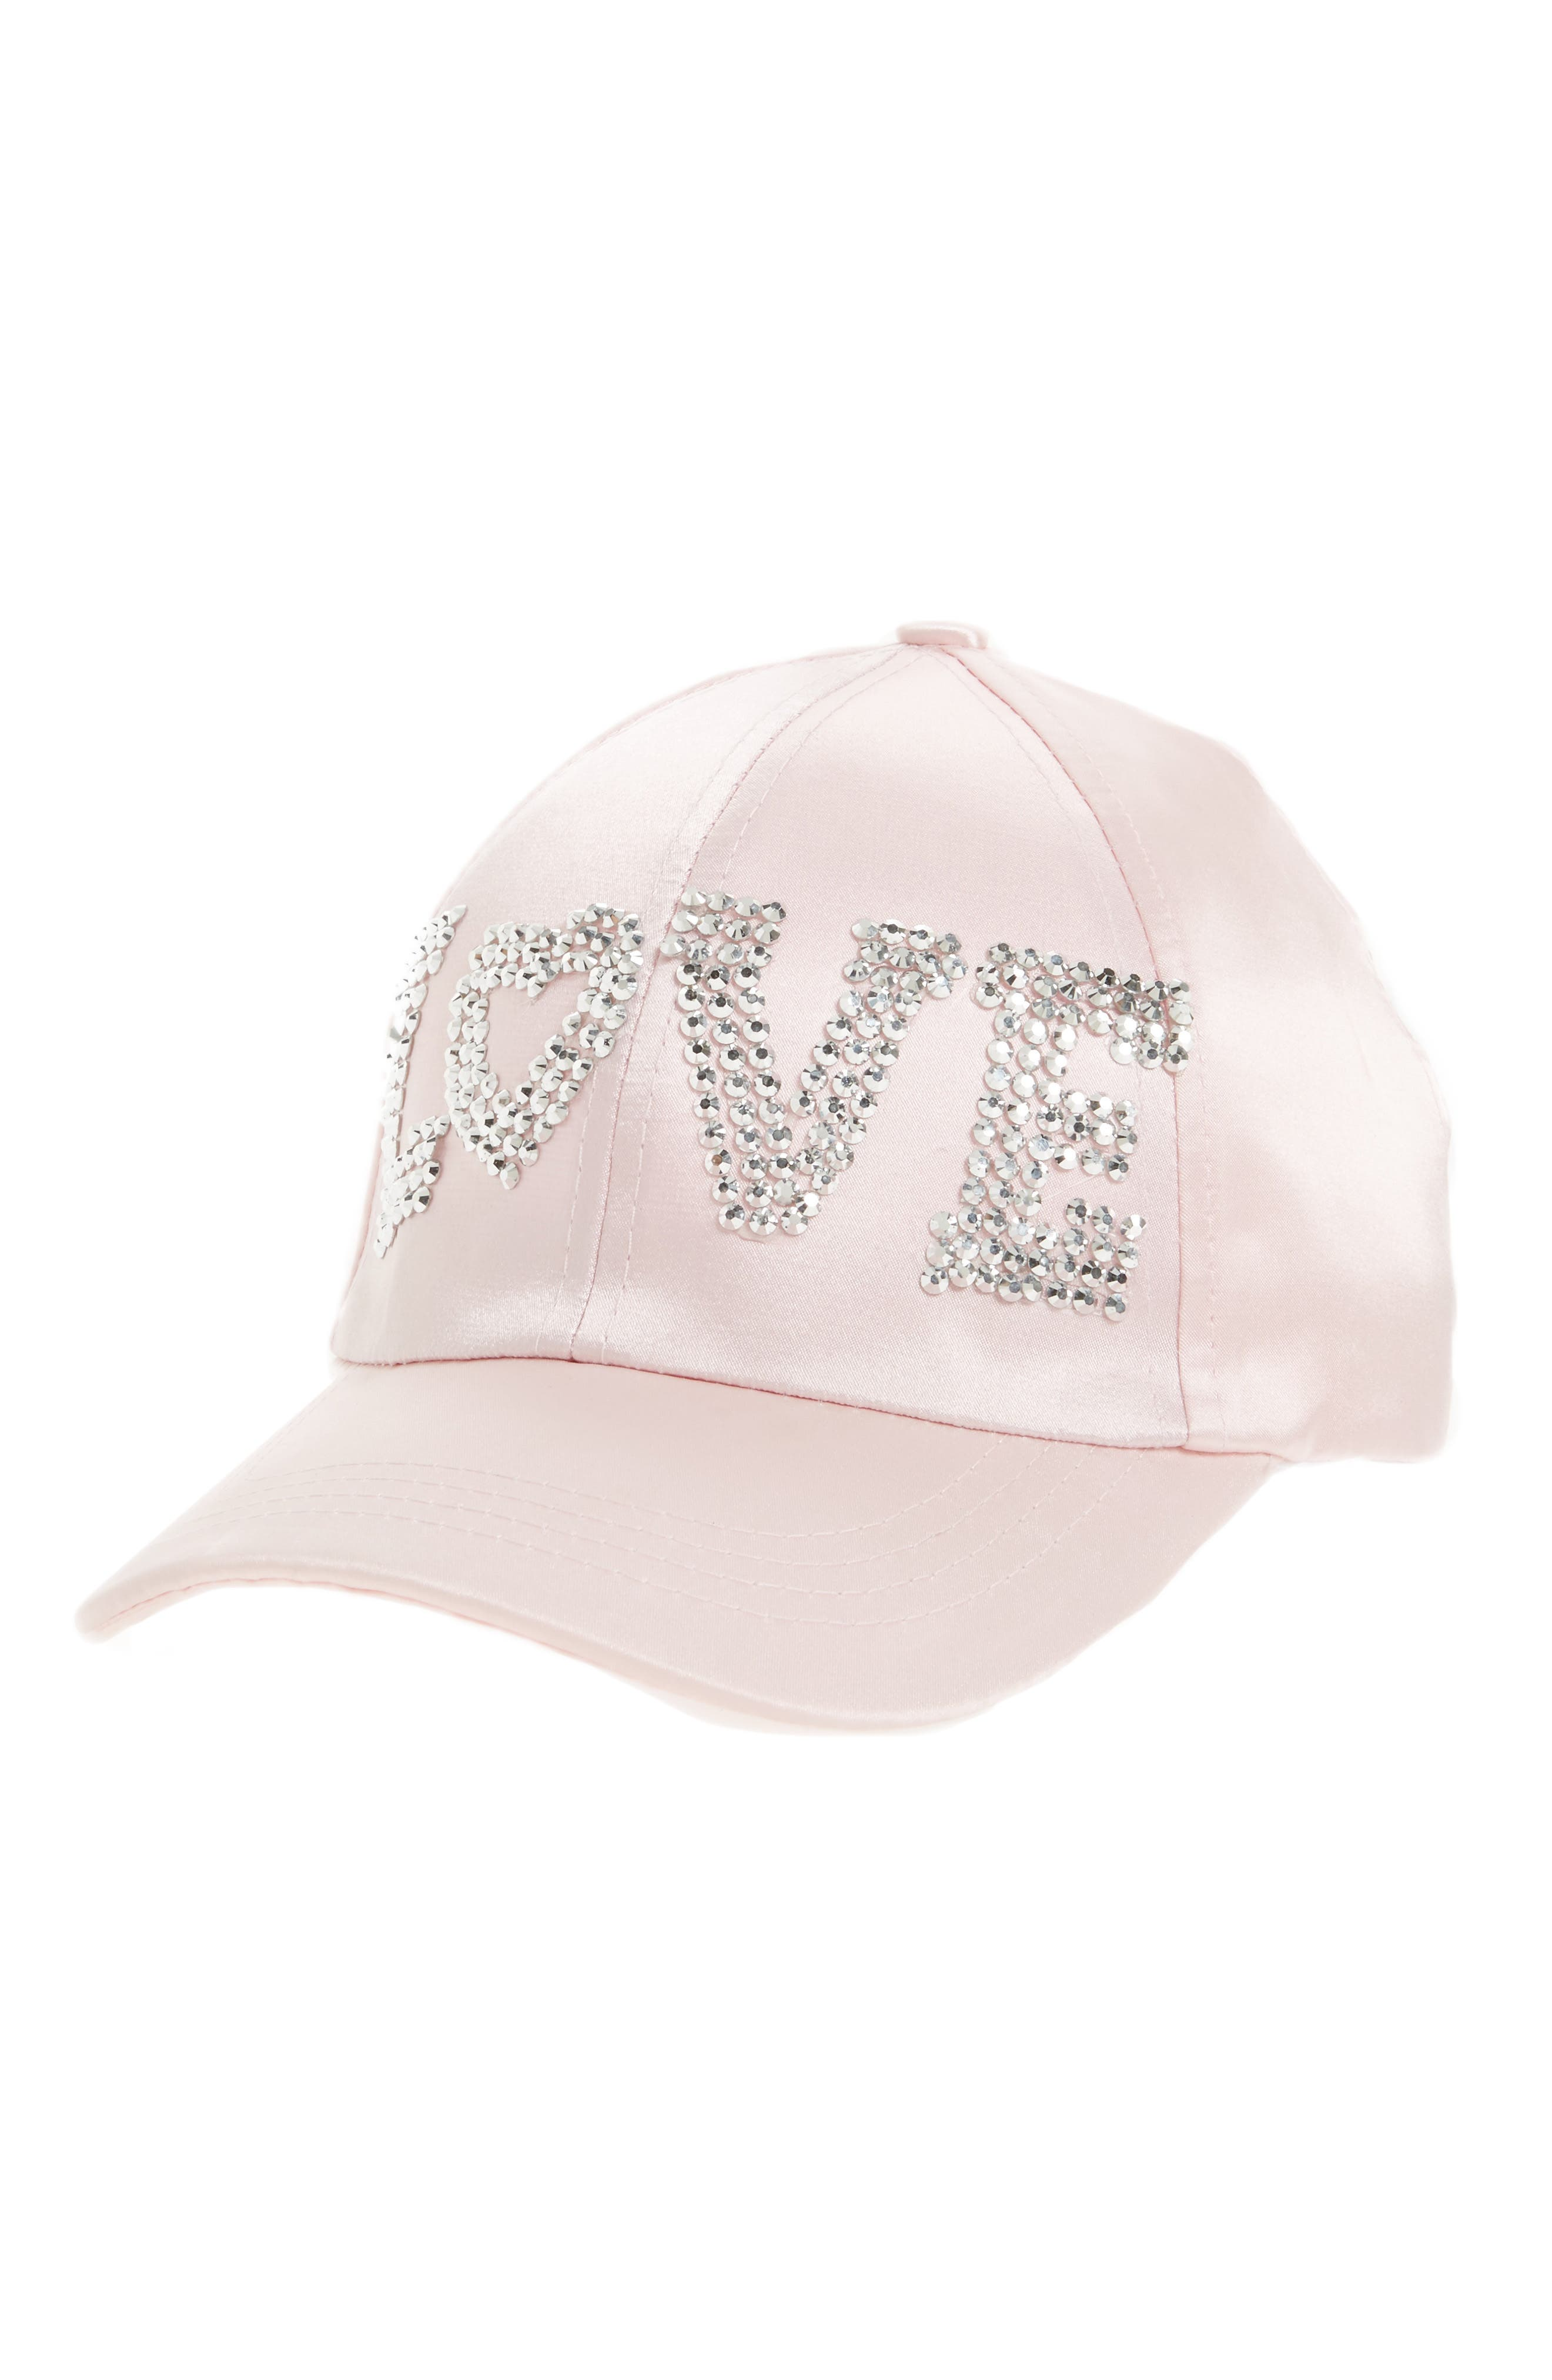 Capelli of New York Crystal Love Satin Ball Cap (Big Girls)